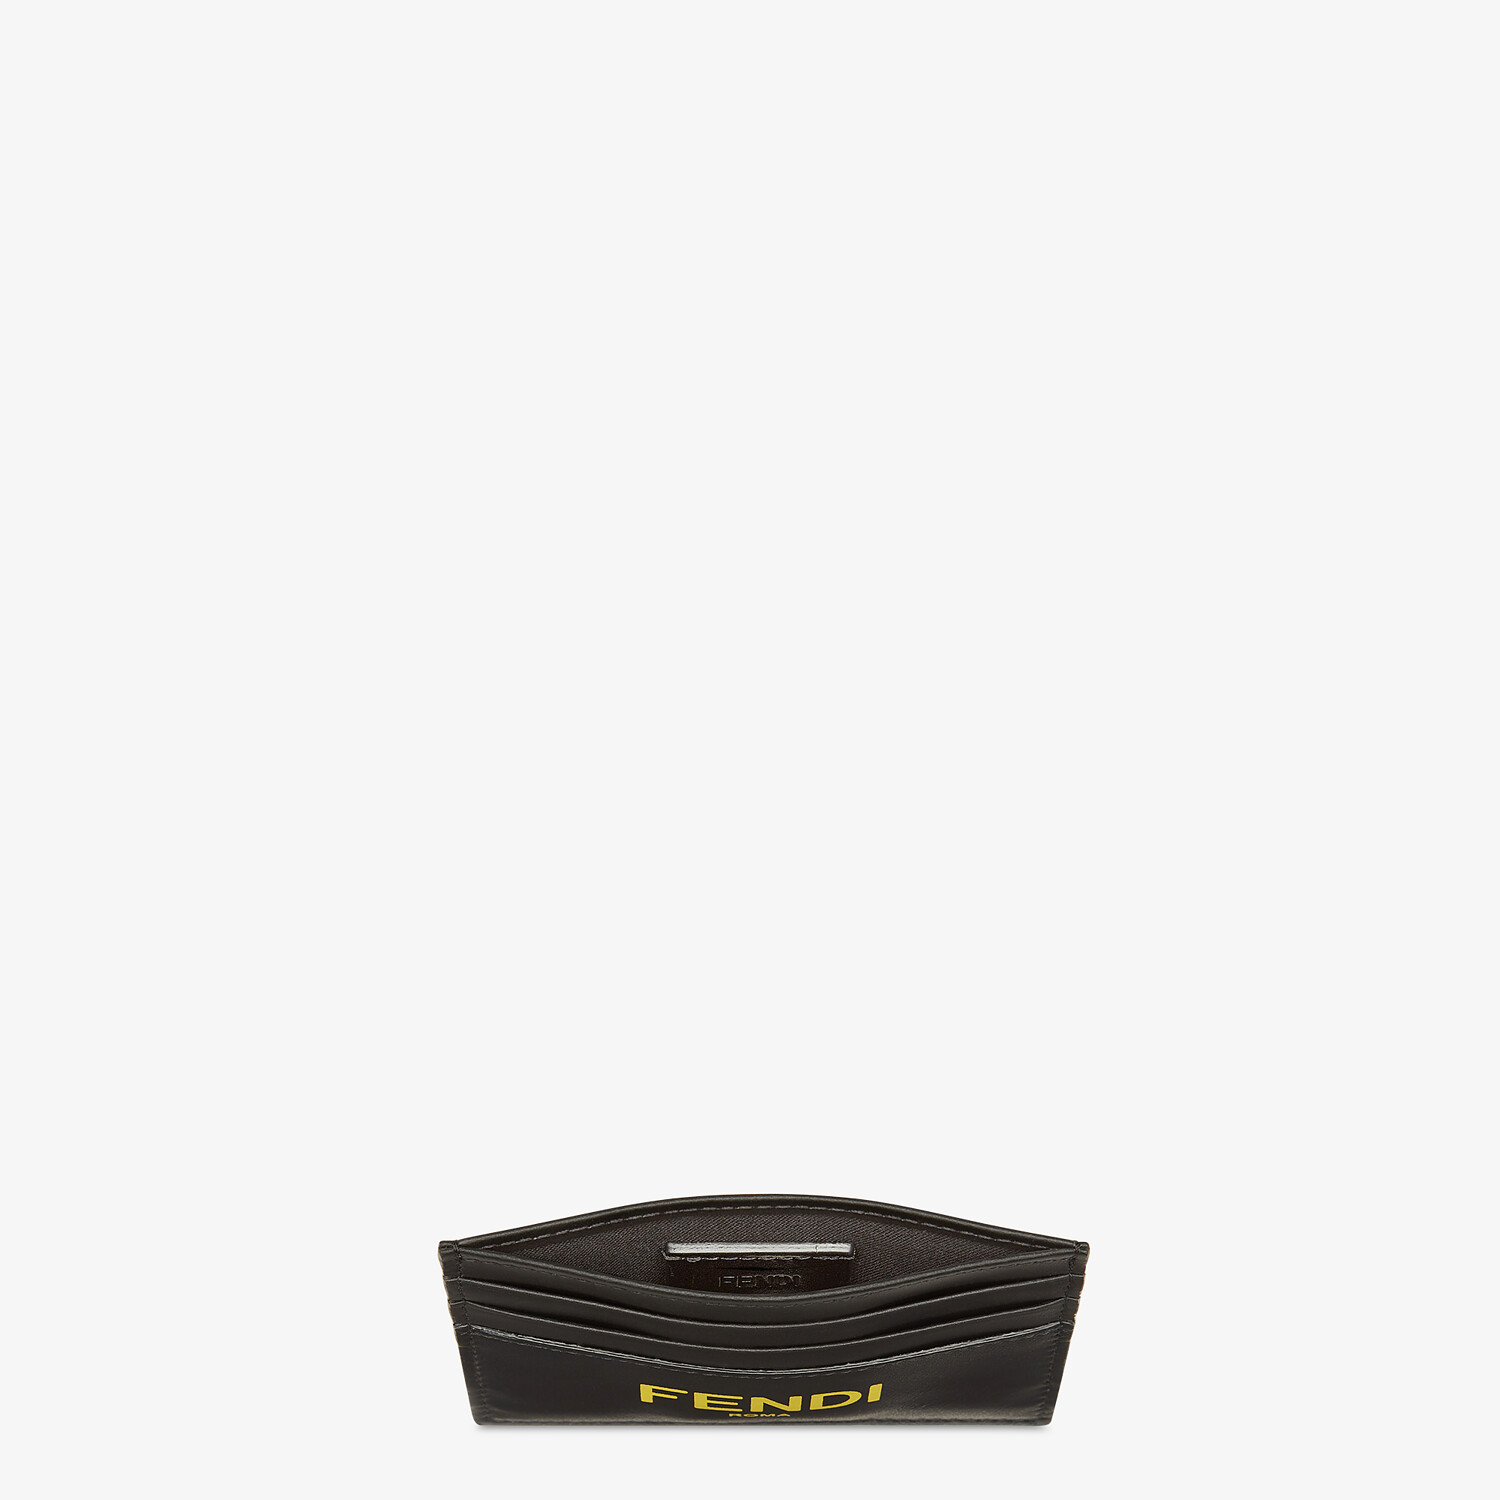 FENDI CARD HOLDER - Black leather card holder - view 3 detail